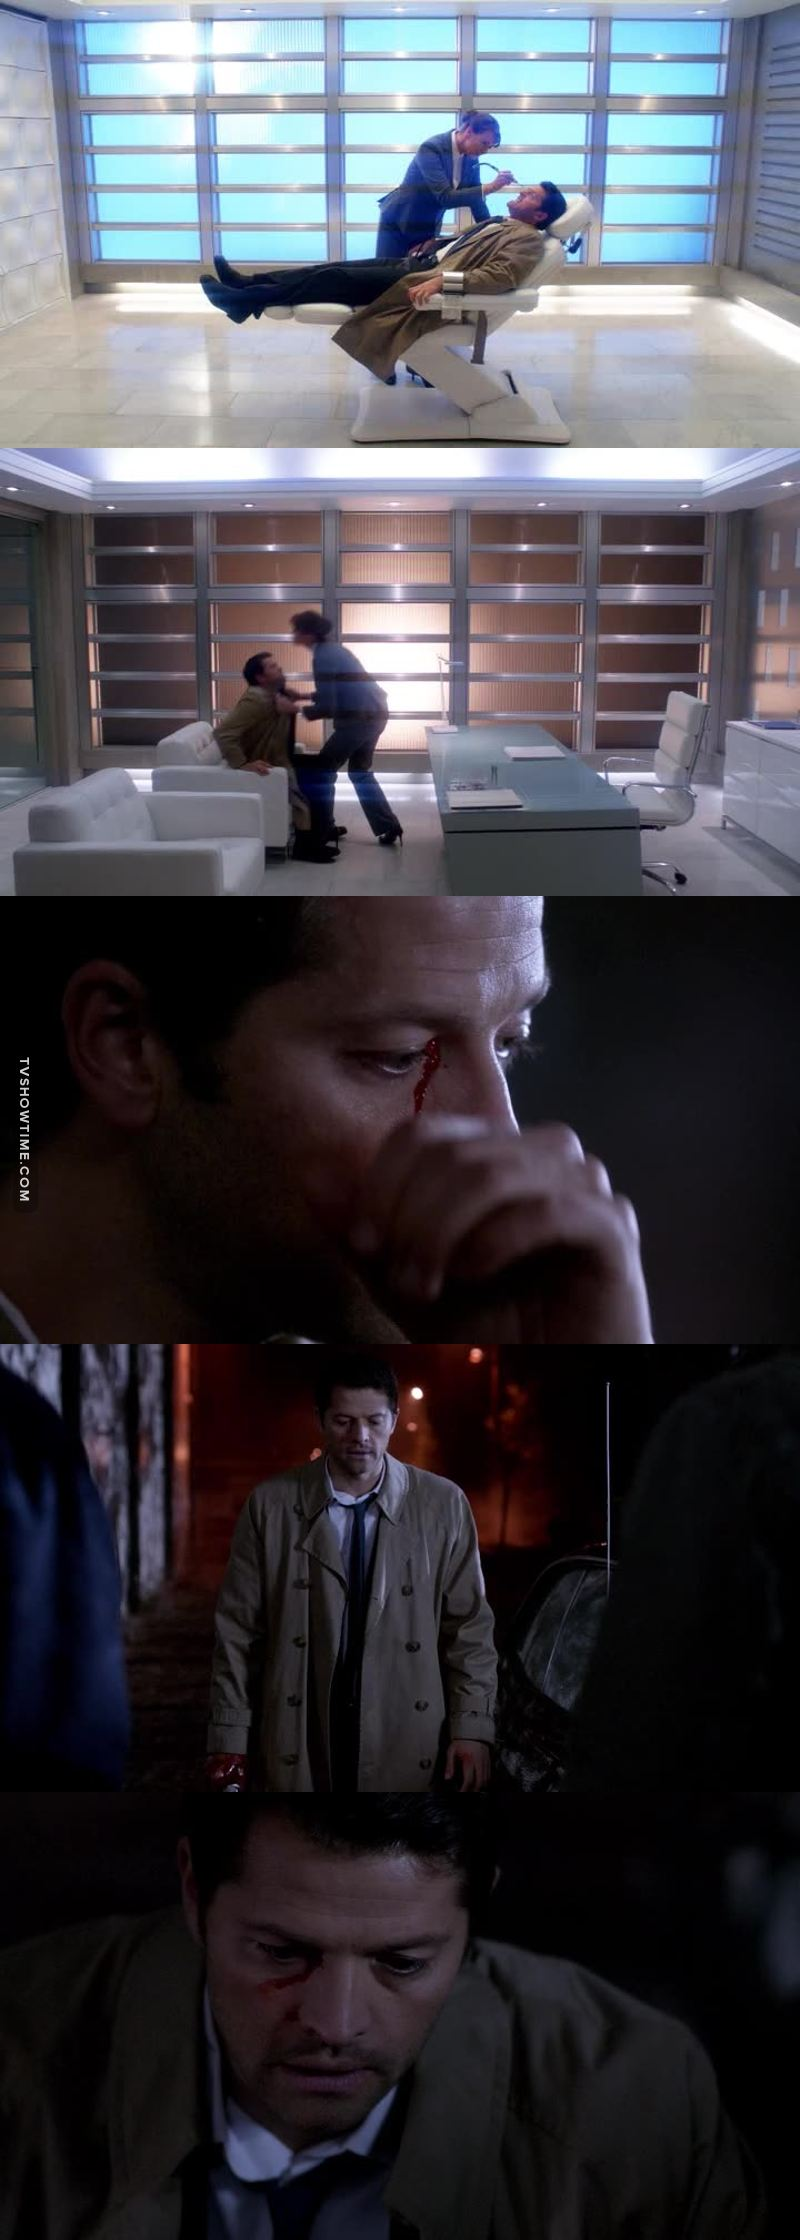 What's happening to cas??? 😣😟😣😣